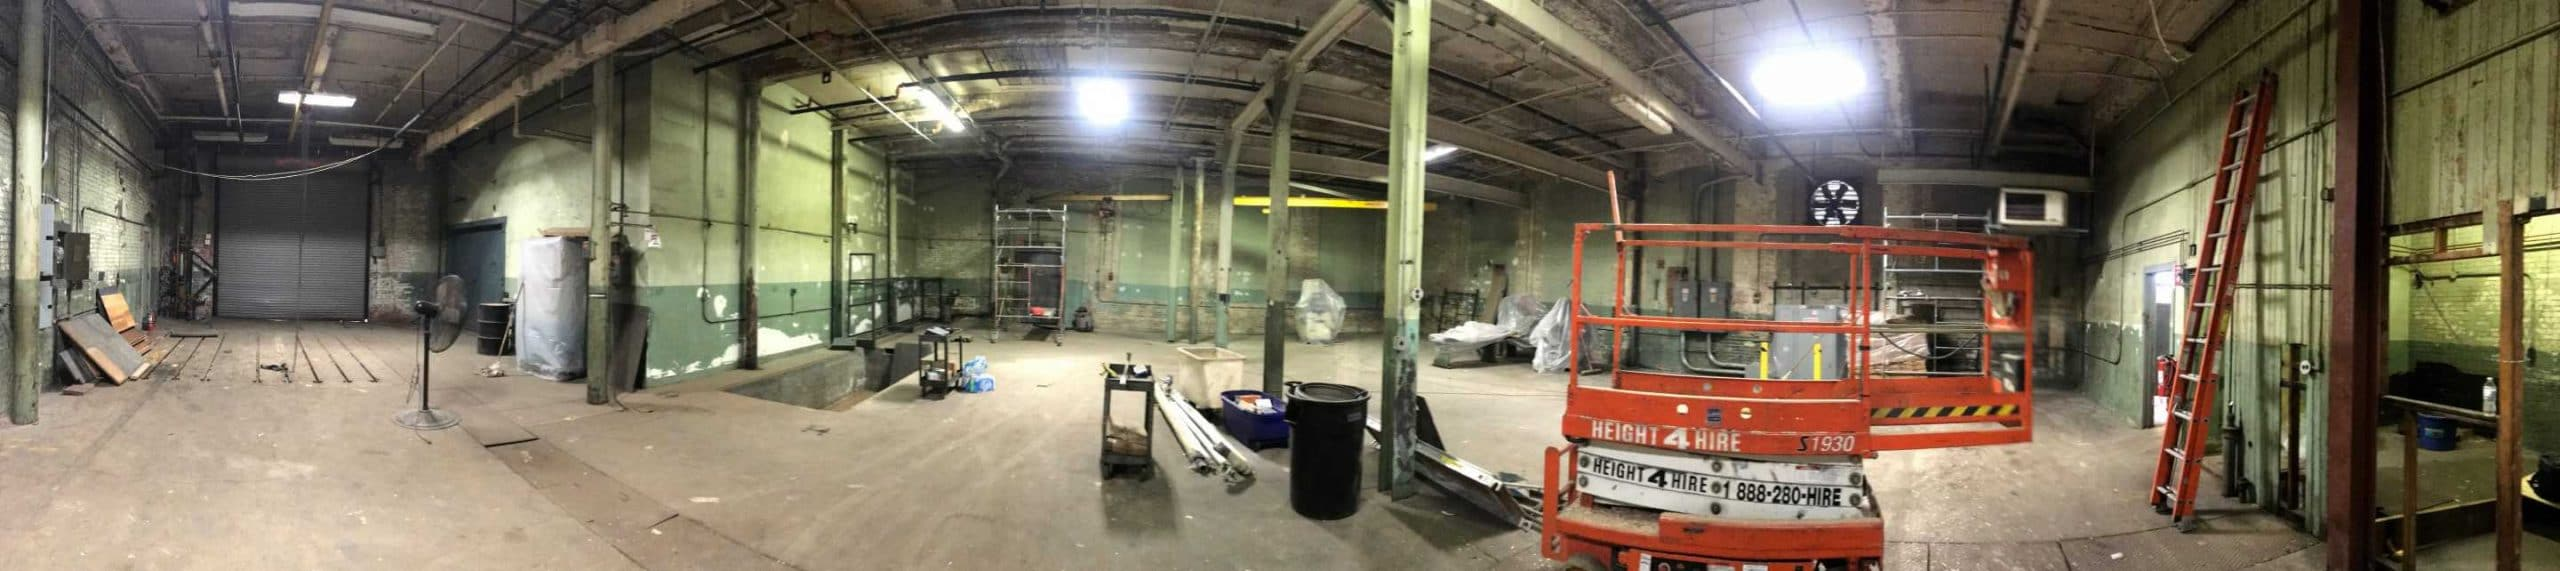 commercial painting project MA